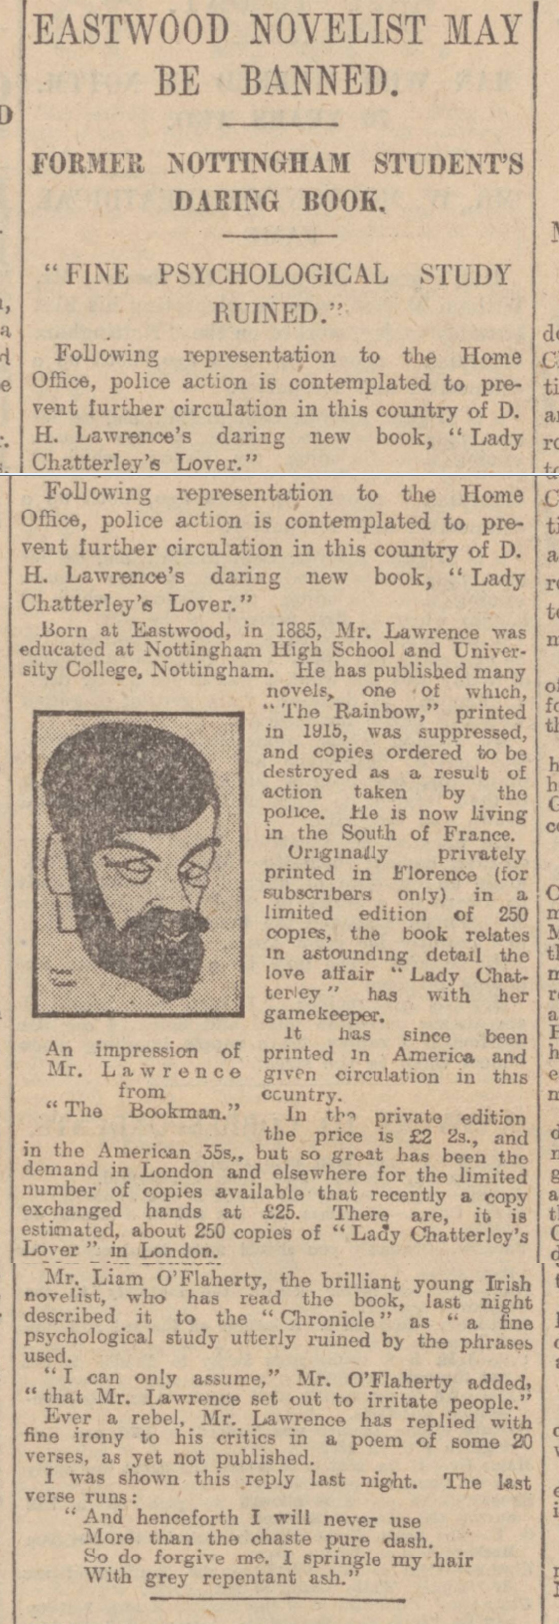 historical newspaper report on D.H. Lawrence, Born on 11 September 1885 - the Banning of lady chatterley's lover